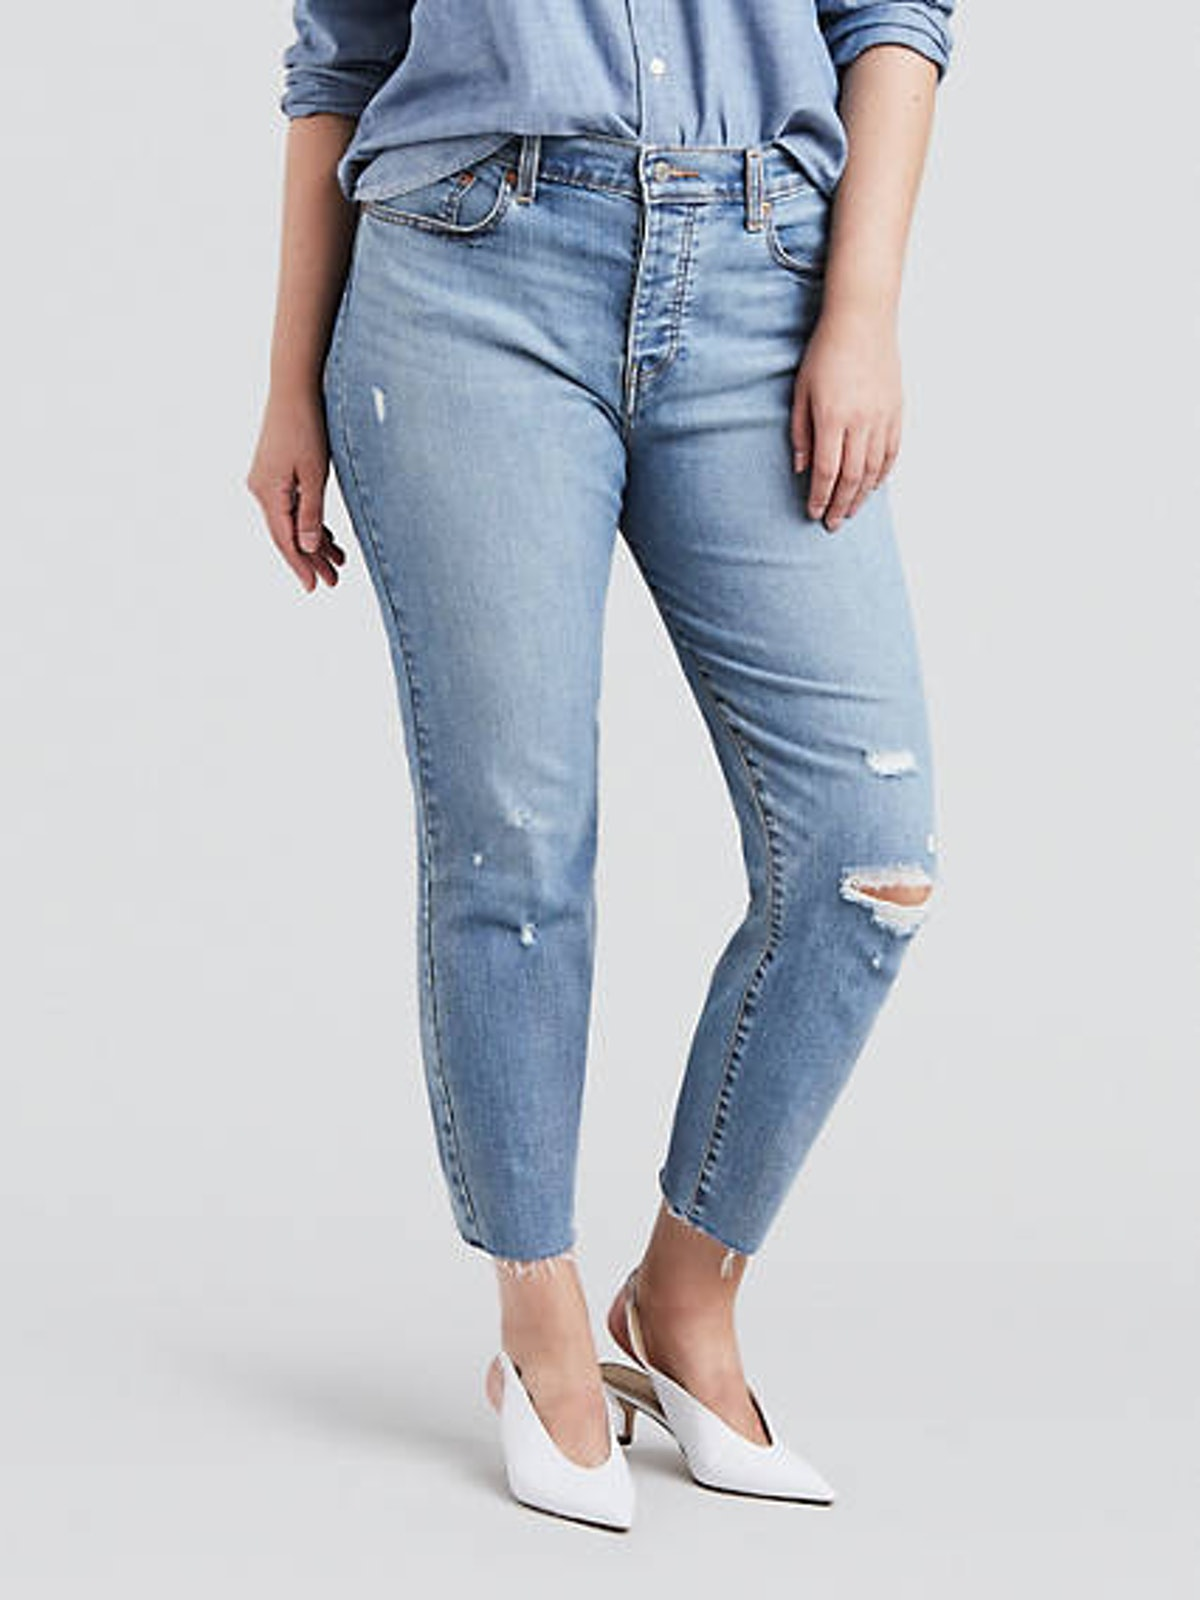 Wedgie Fit Jeans In Blue Spice